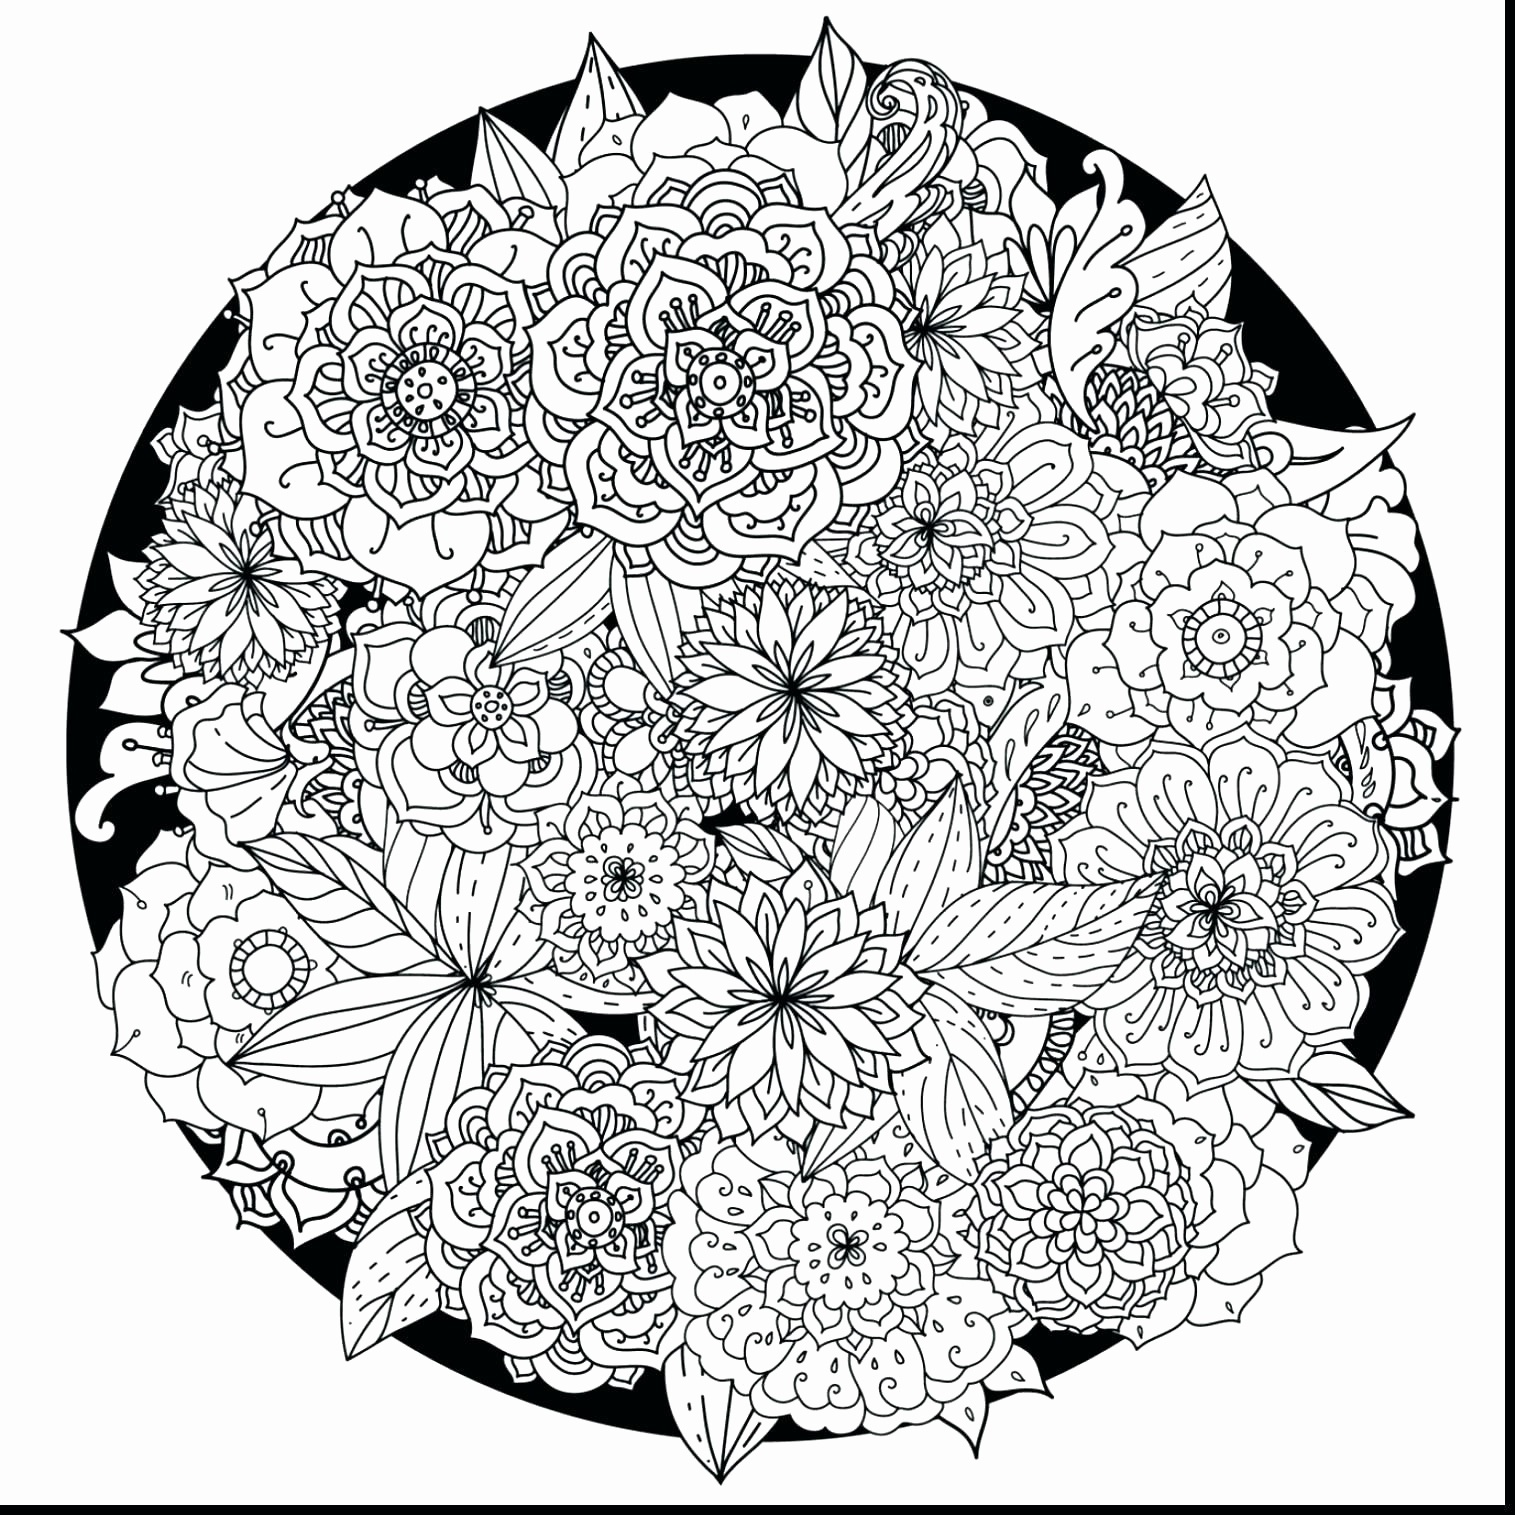 Printable Mandala Coloring Pages 28 Collection Of Mandala Coloring - Free Printable Mandala Coloring Pages For Adults